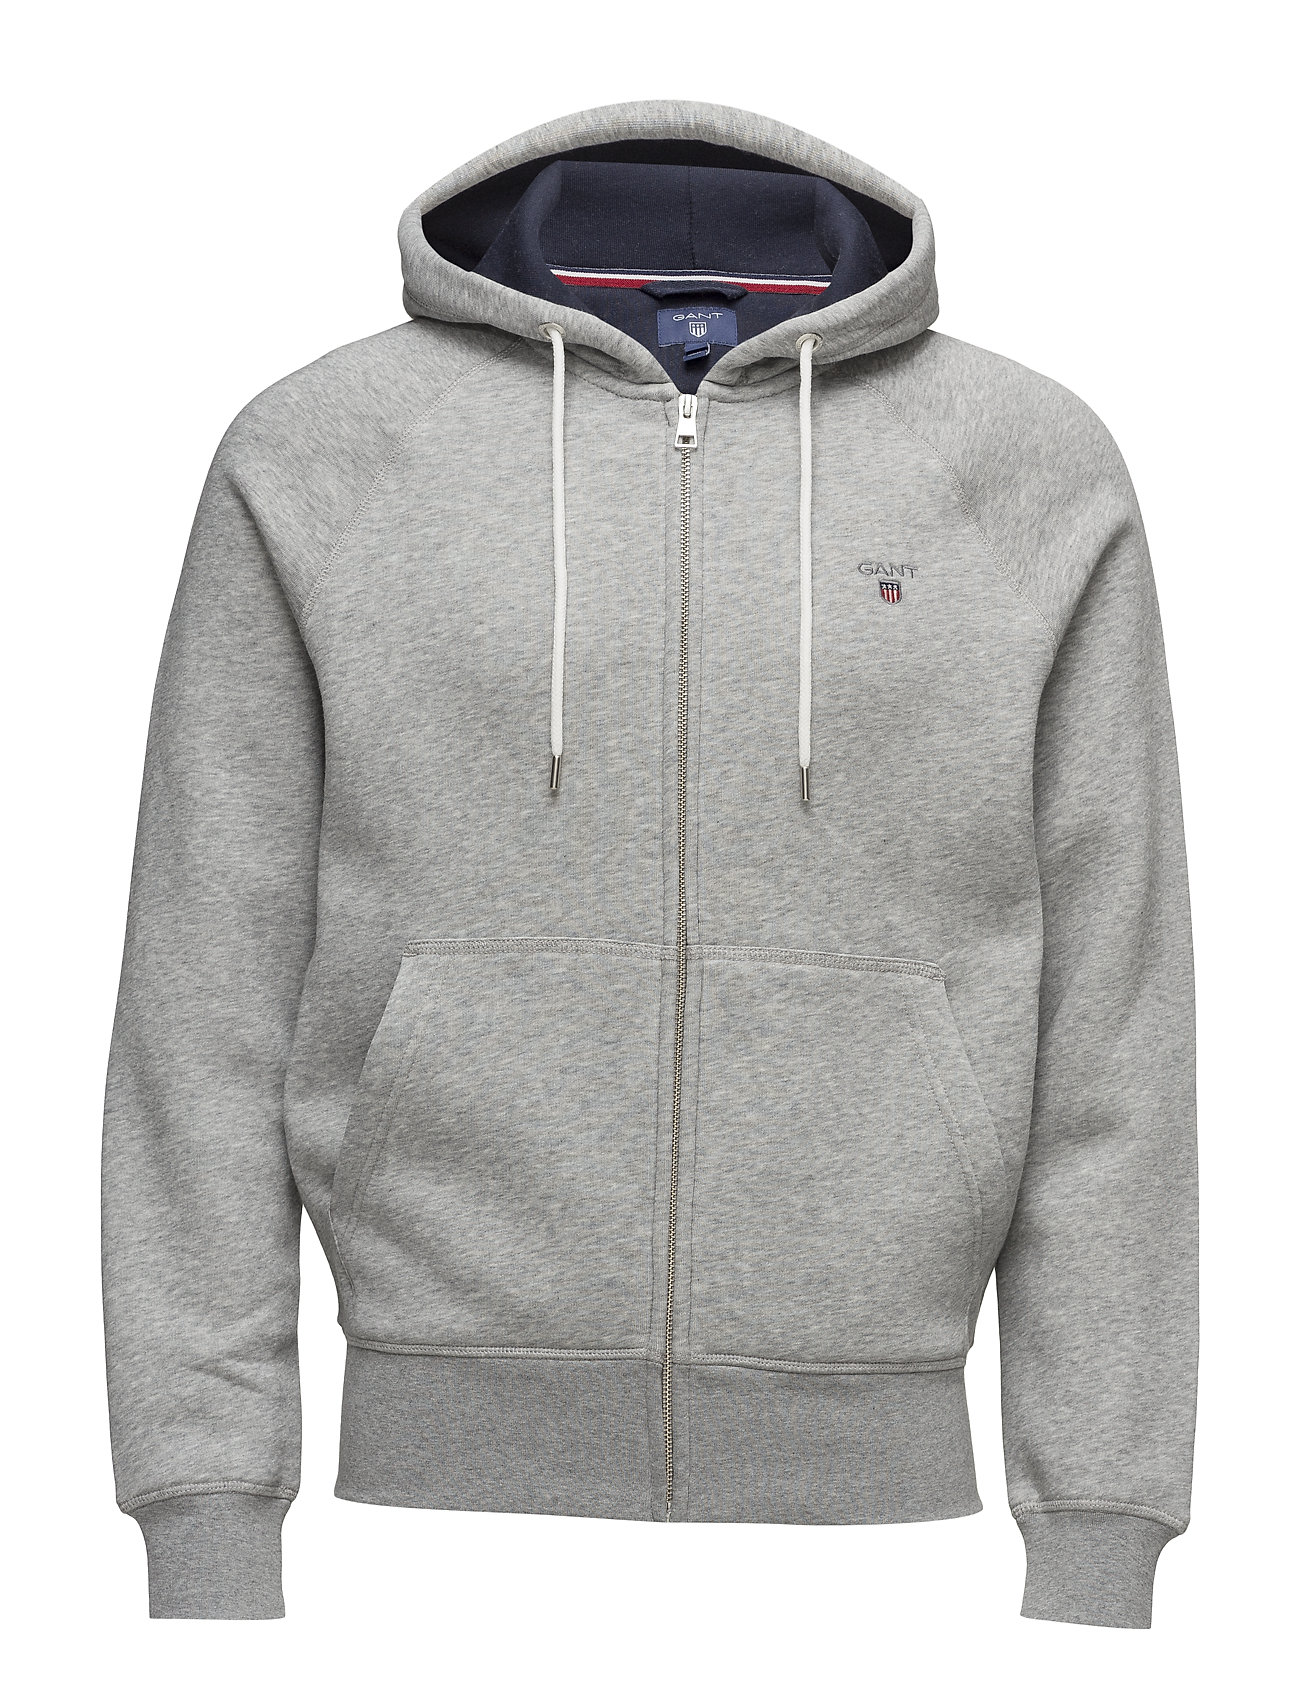 GANT GANT ORIGINAL FULL ZIP SWEAT HOODIE